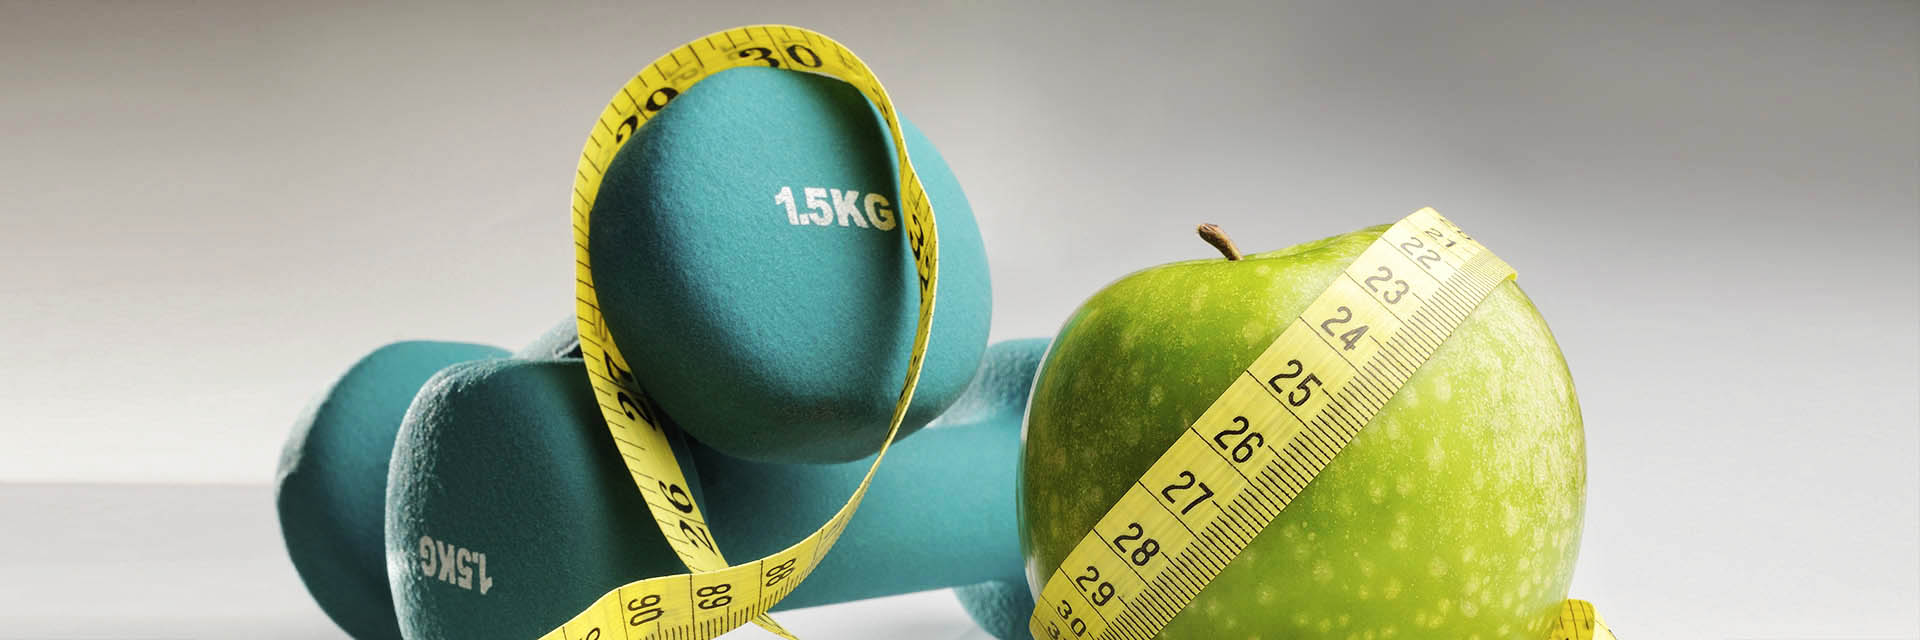 Apple, measuring tape, and dumbbells weights